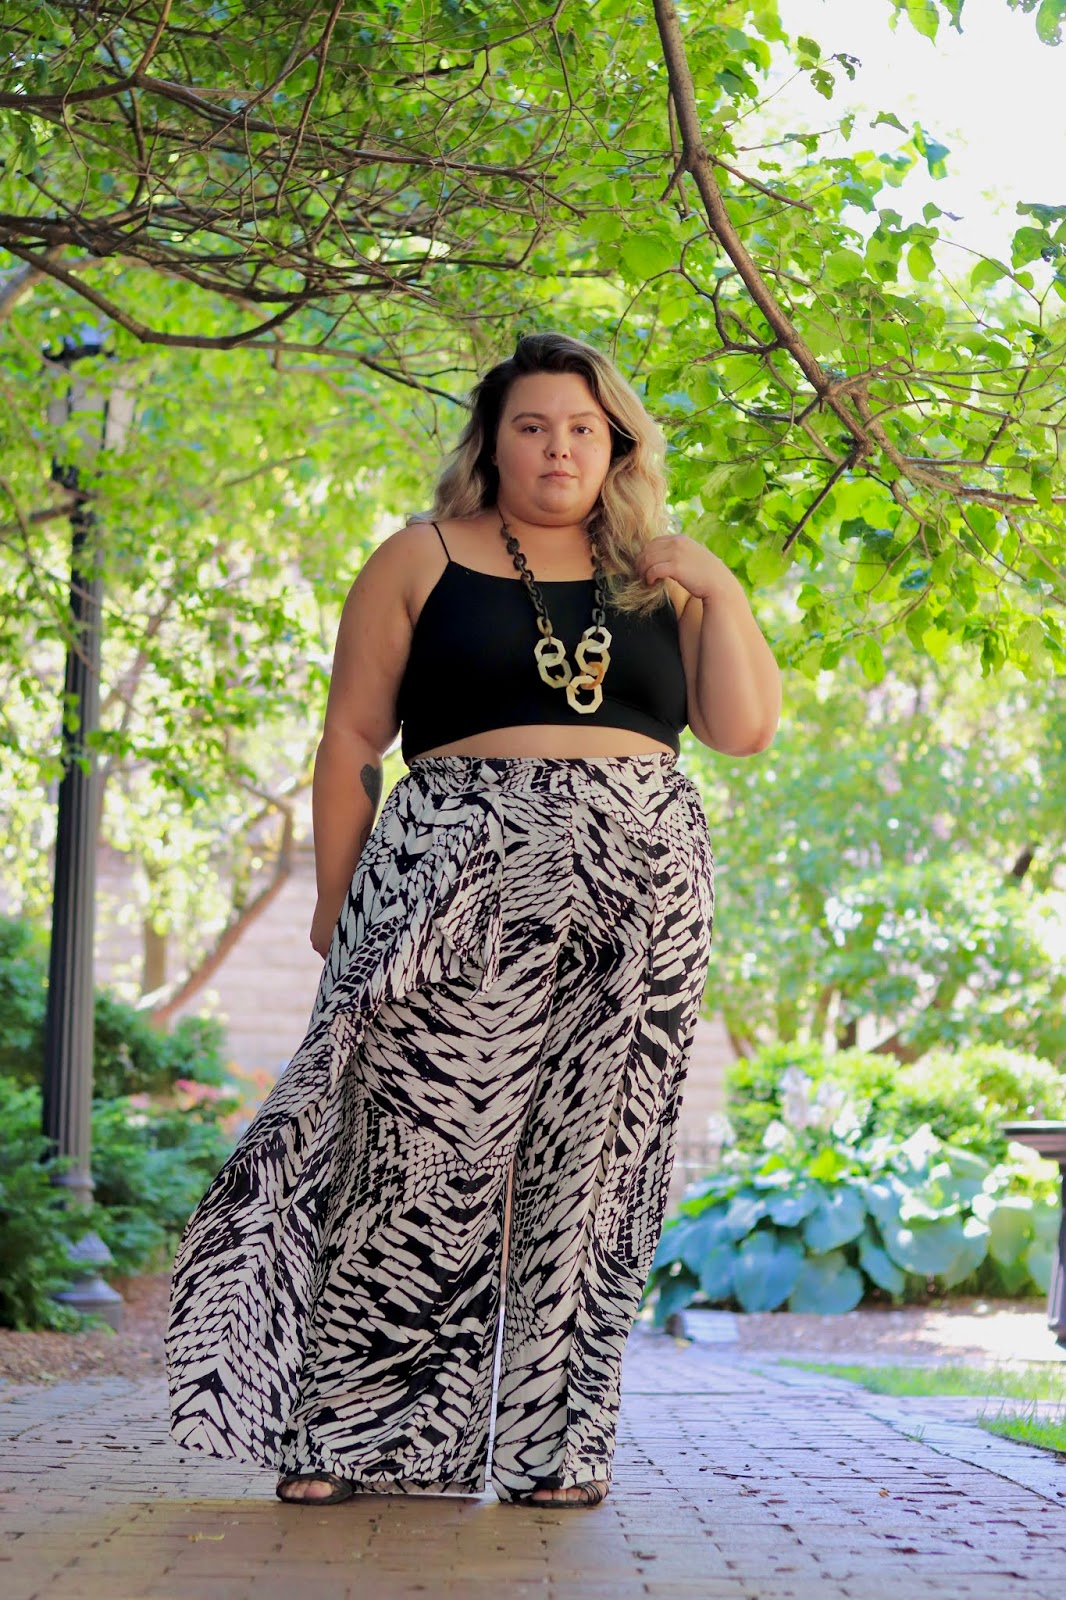 Chicago Plus Size Petite Fashion Blogger, influencer, YouTuber, and model Natalie Craig, of Natalie in the City, reviews Fashion Nova Curves wide leg pants and crop tops. Plus size summer fashion 2019